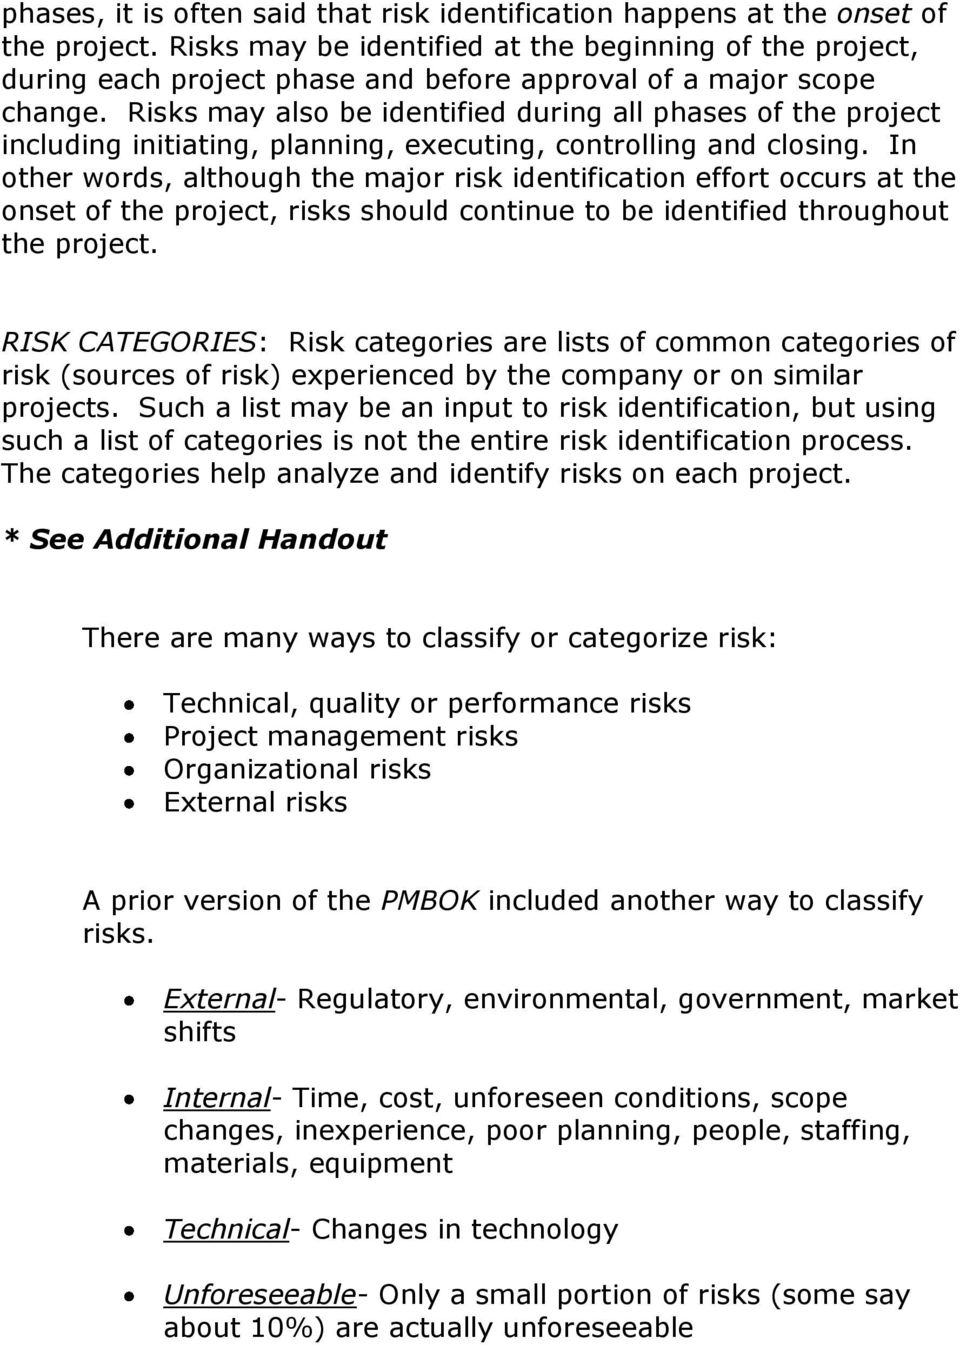 Risks may also be identified during all phases of the project including initiating, planning, executing, controlling and closing.